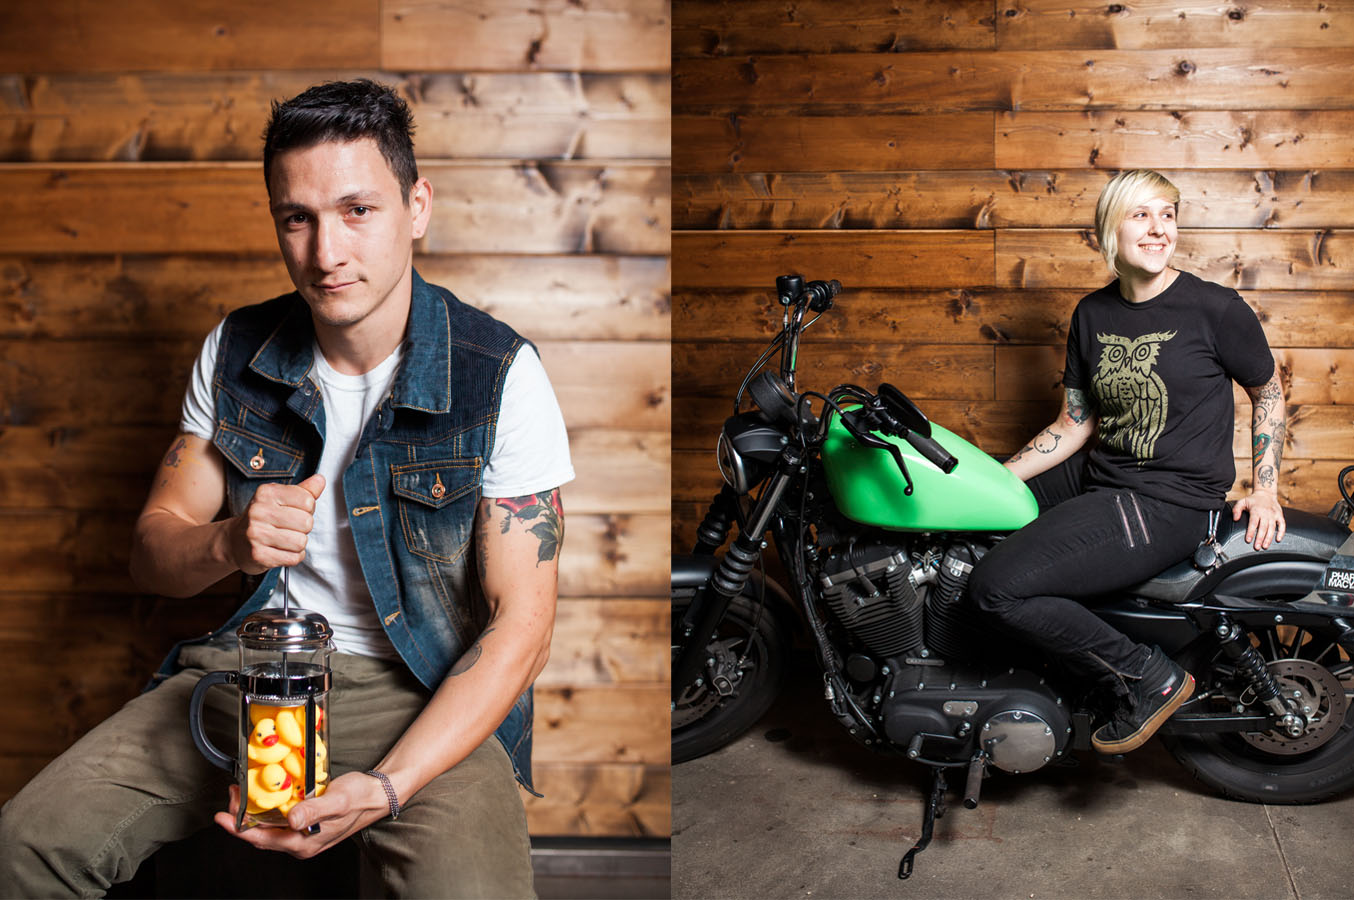 Photos by  Julie Rings .   Dylan Michalek, James Coffee Co: He has a lot of rubber duckies.  Sarah Girdzius, James Coffee Co: She's riding Dirty Diana.